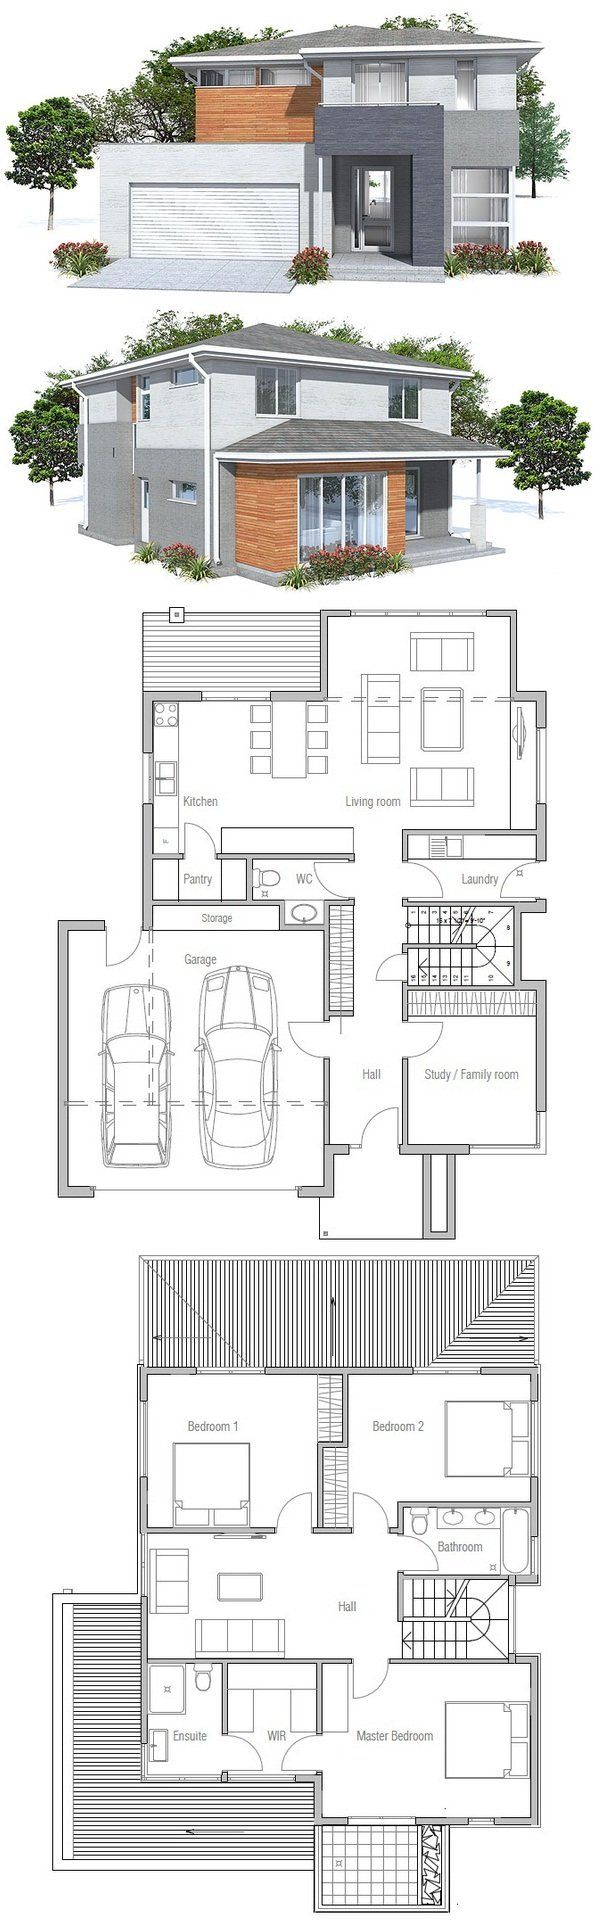 Best 25 modern house plans ideas on pinterest modern for Small modern house floor plans